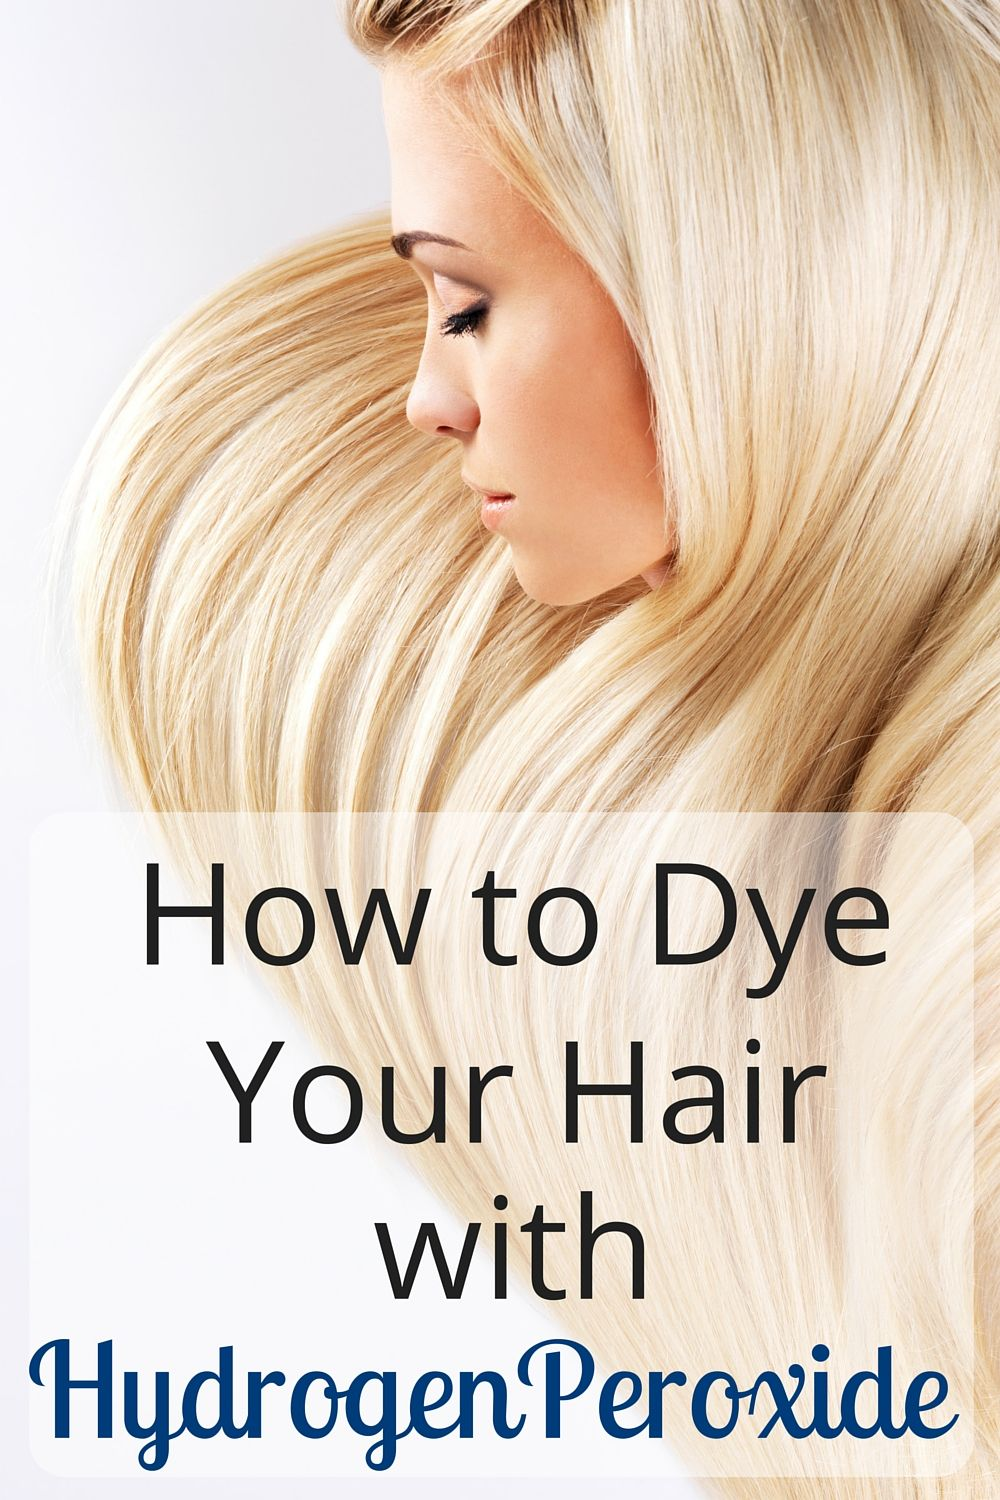 How To Dye Your Hair With Hydrogen Peroxide Pinterest Hydrogen